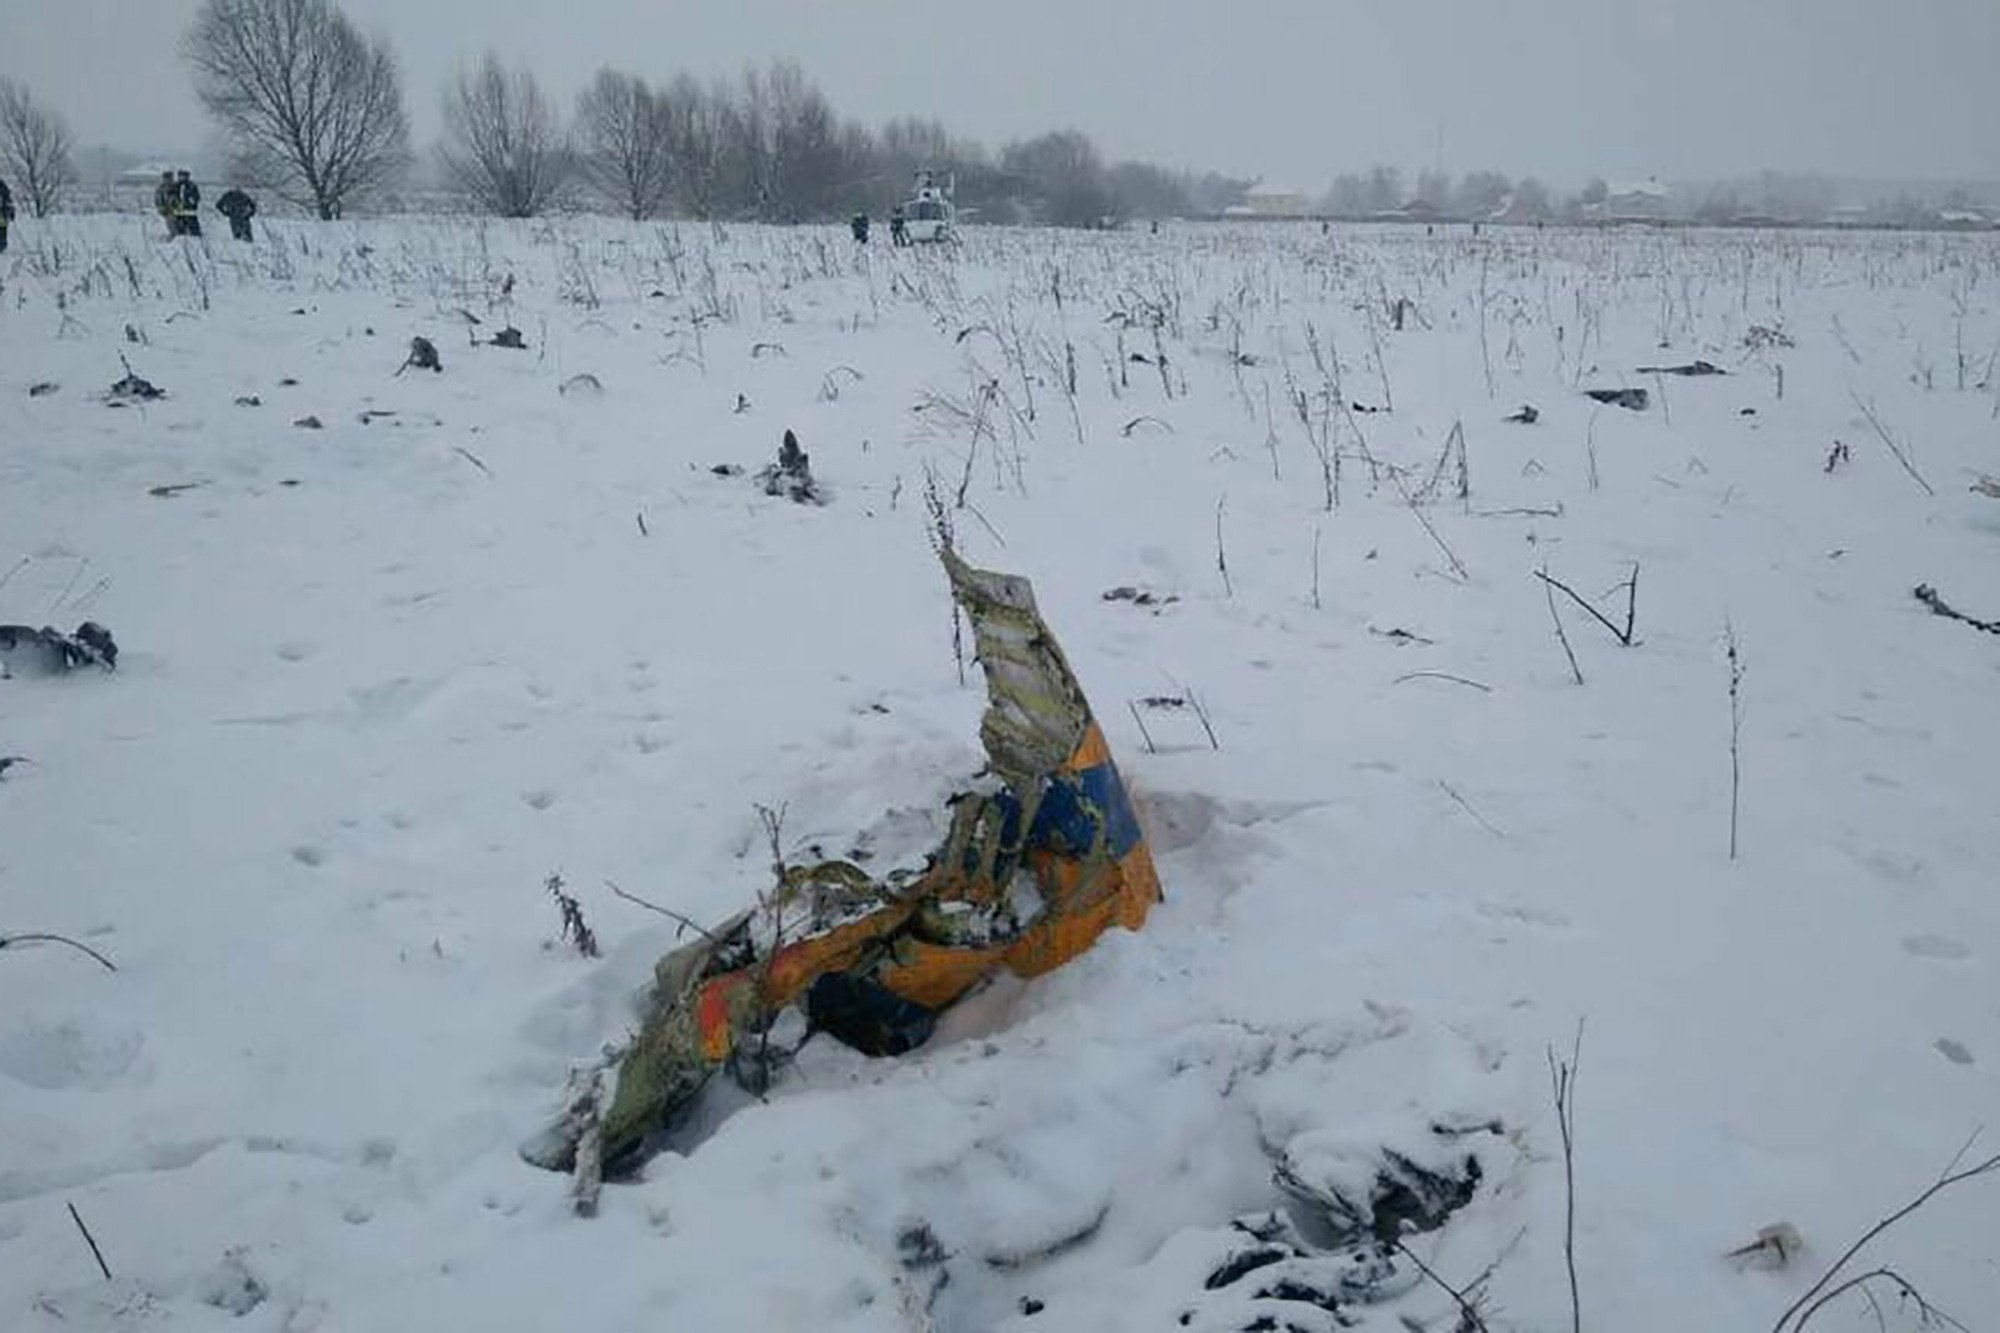 Plane with 71 passengers crashes near Moscow, killing all on board